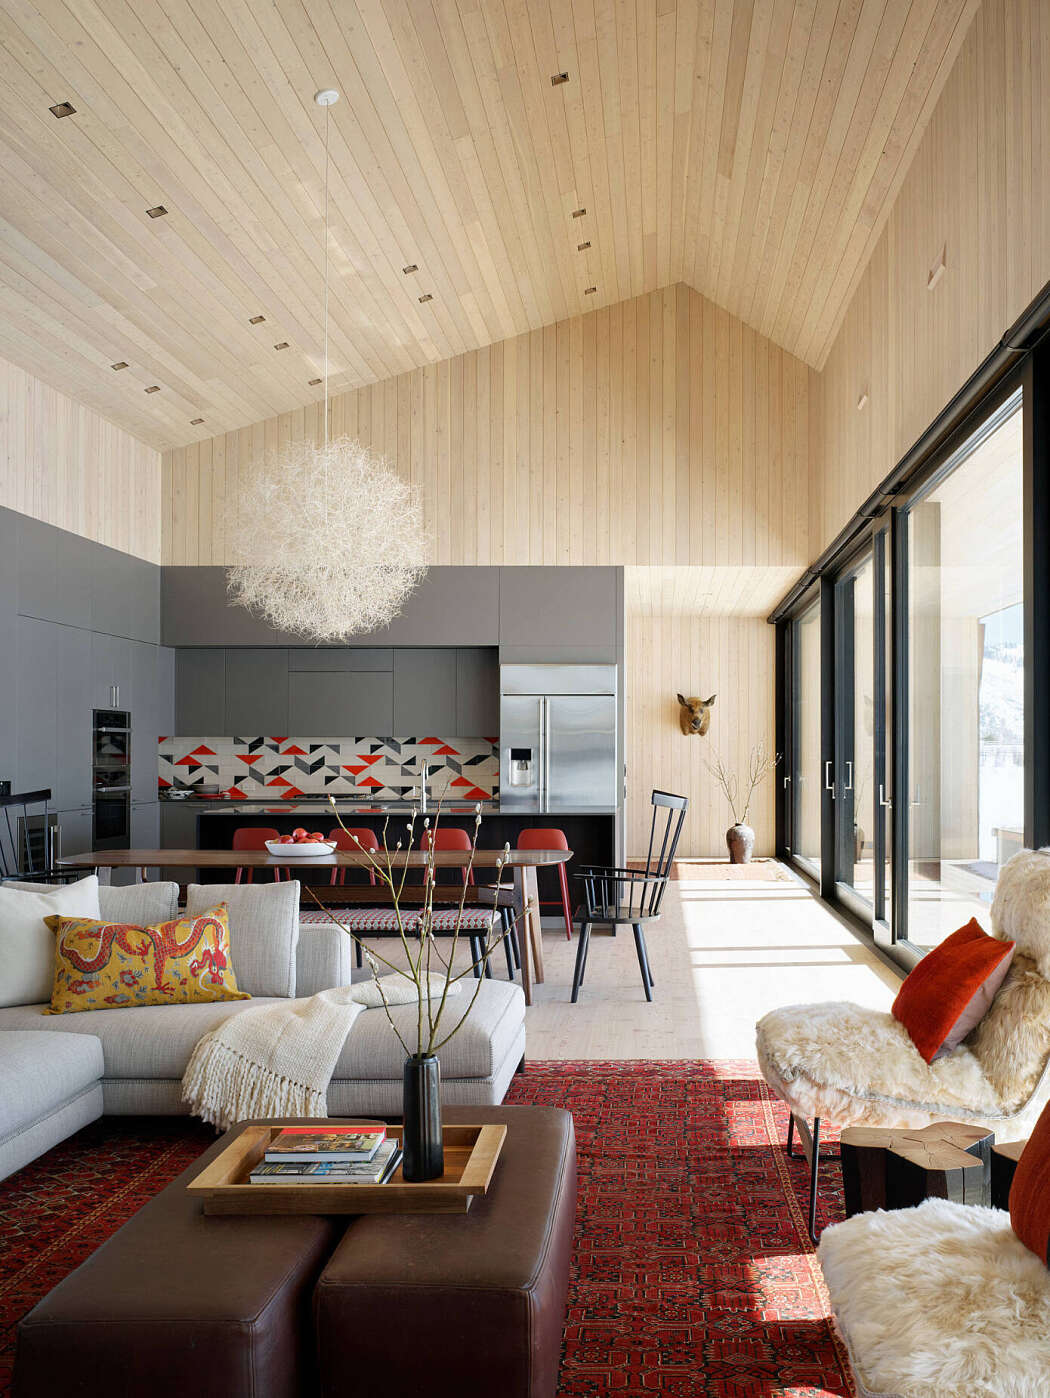 Dogtrot by Carney Logan Burke Architects